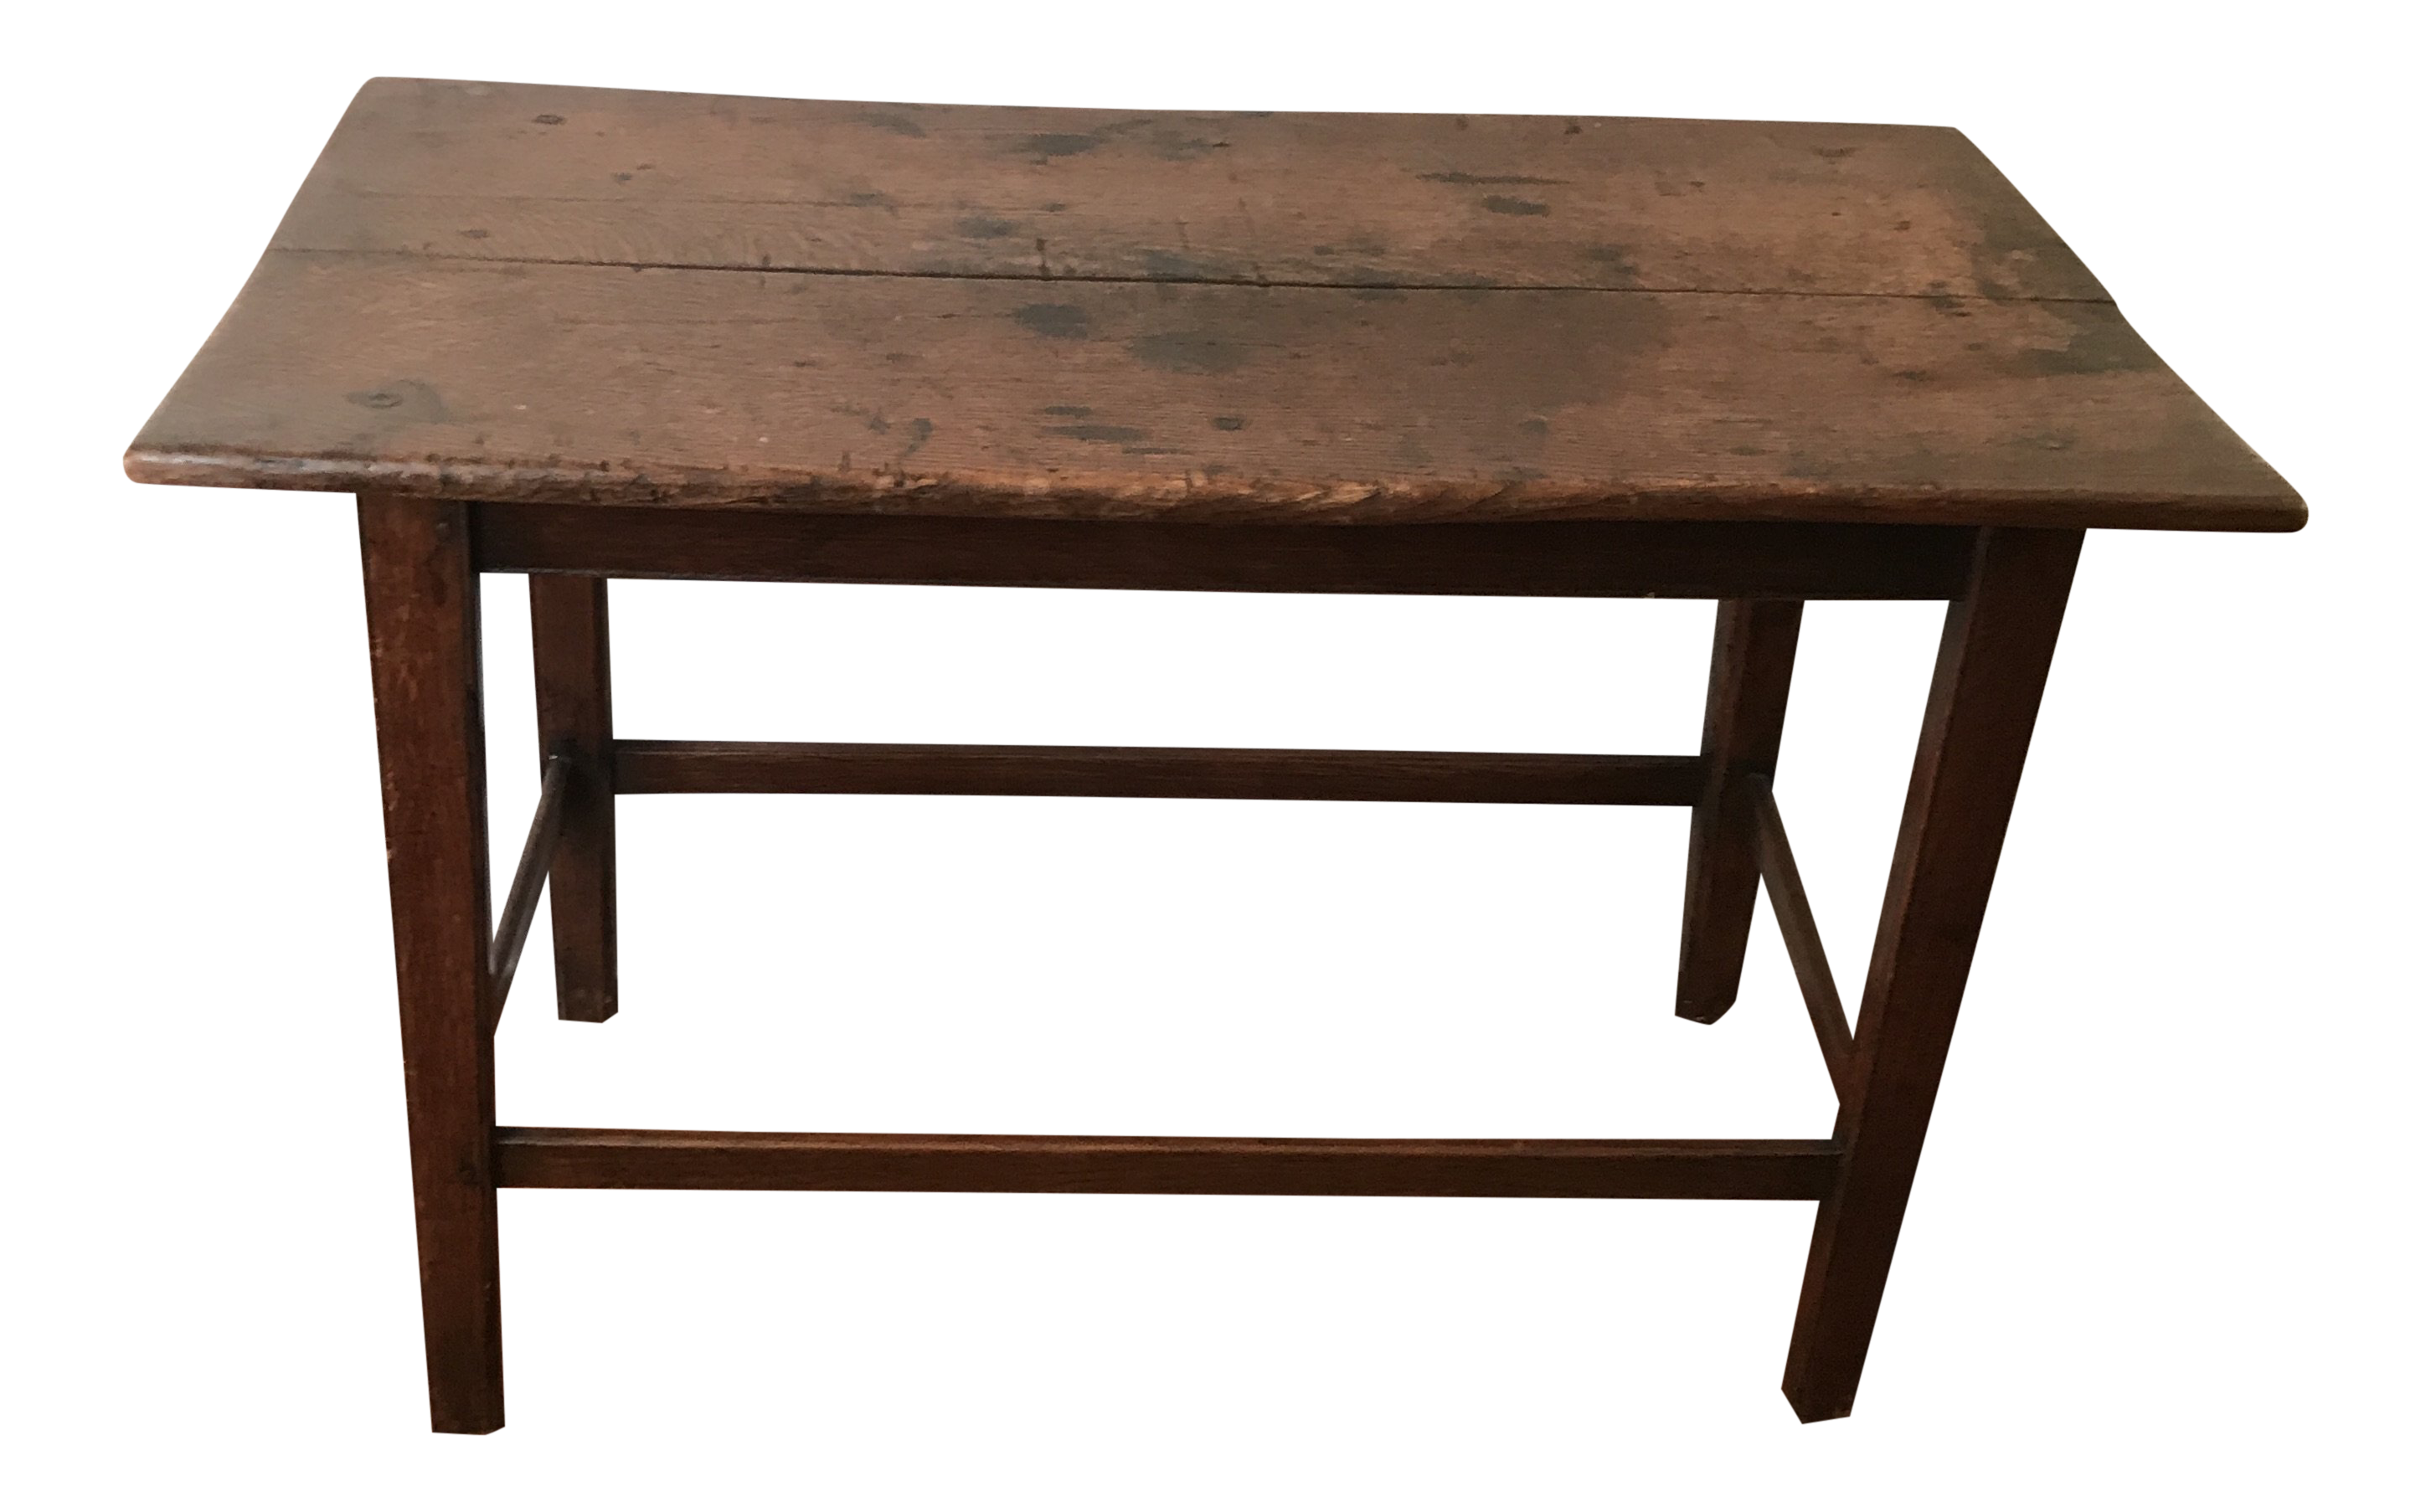 Swell Wood Night Table Pabps2019 Chair Design Images Pabps2019Com